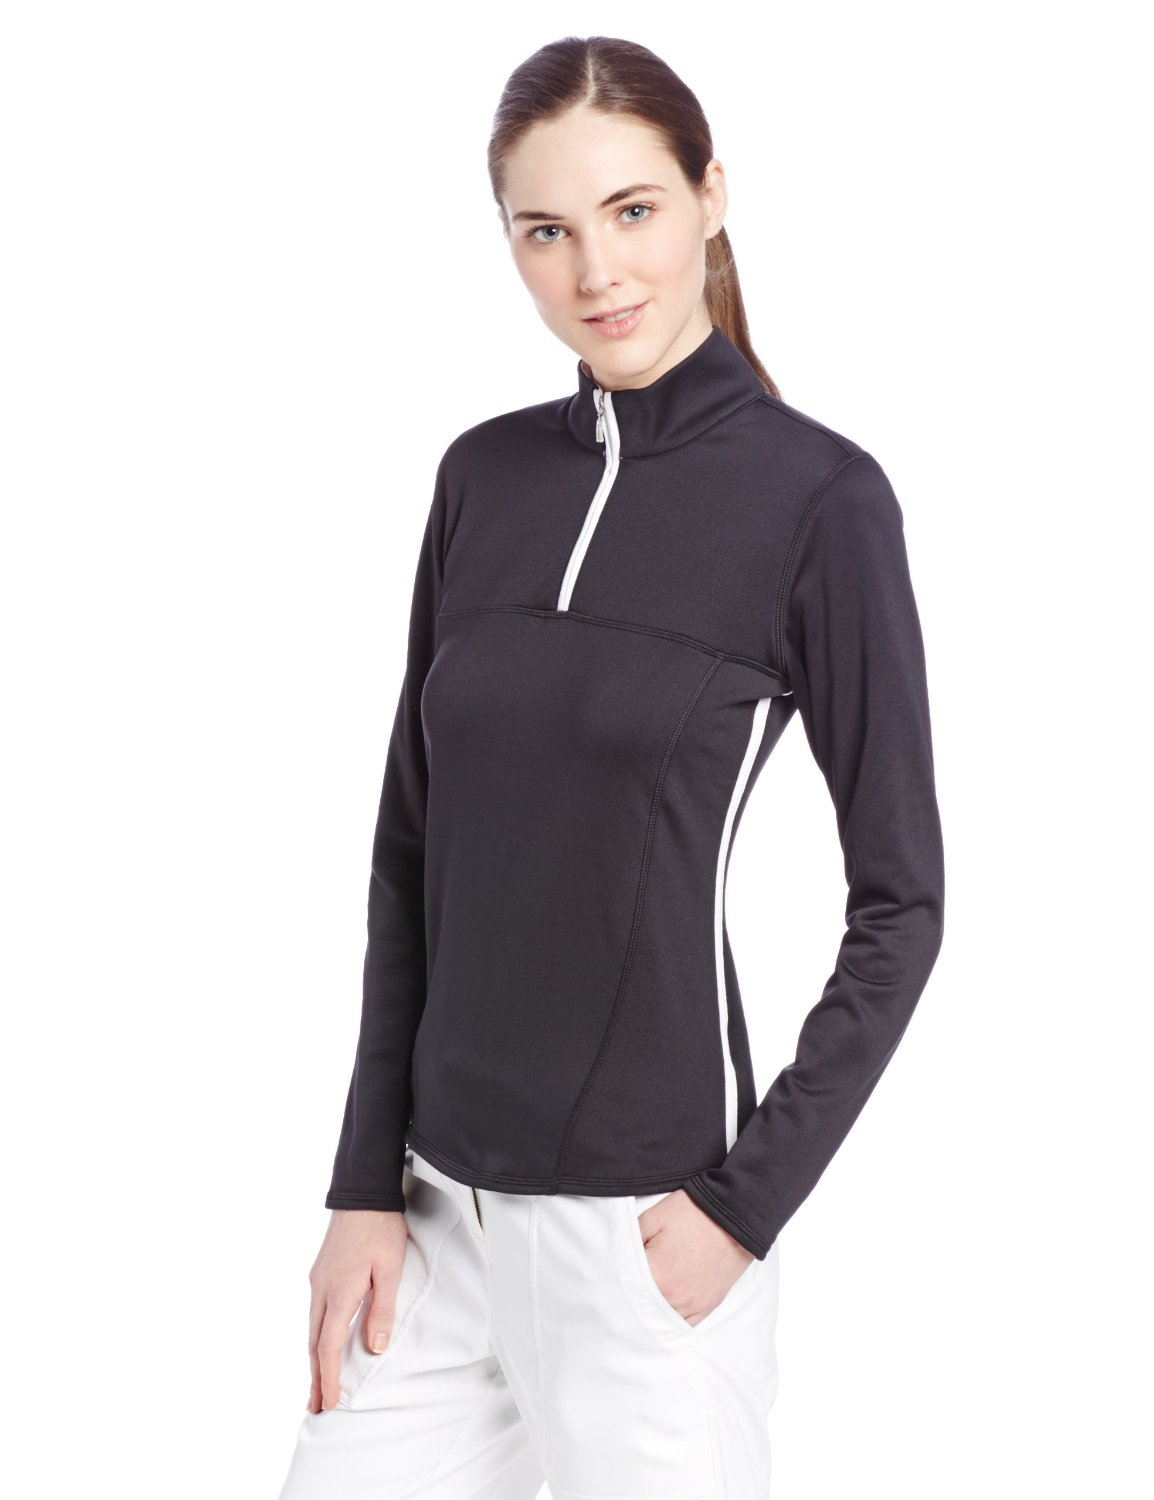 Adidas Womens Climawarm Plus Golf Pullovers